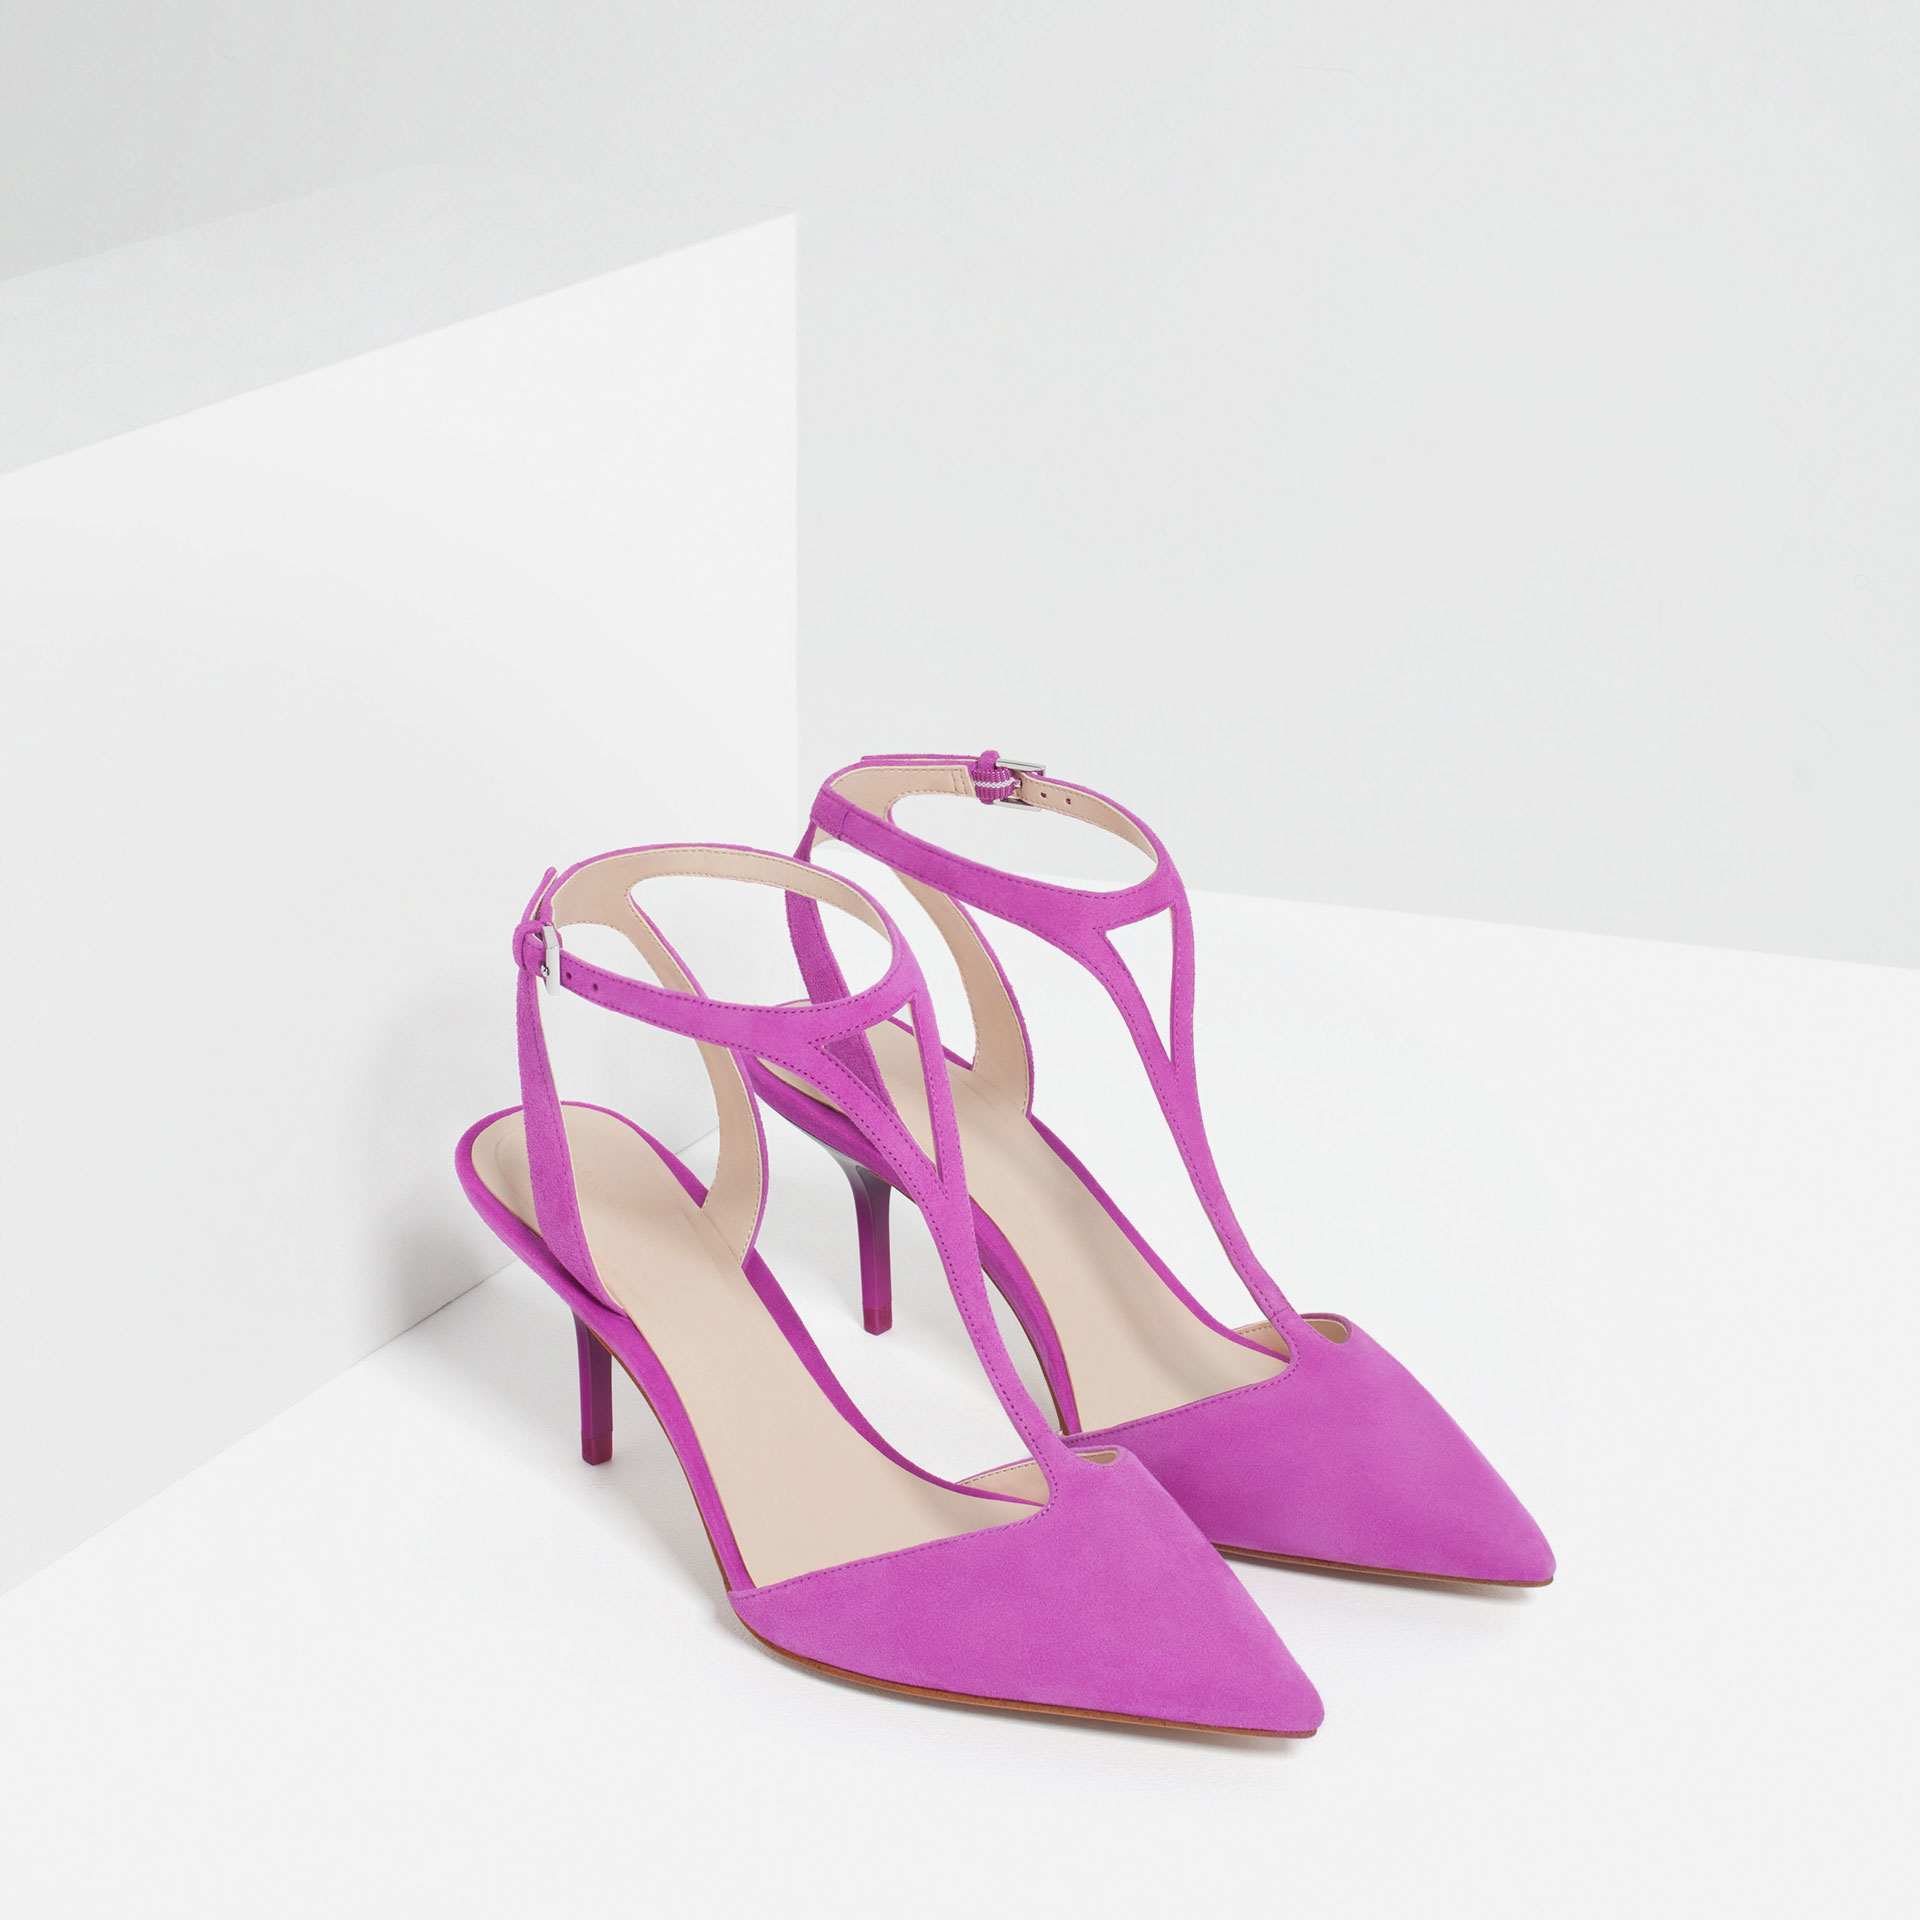 Zara Mid Heel Leather Shoes With Ankle Strap in Purple | Lyst